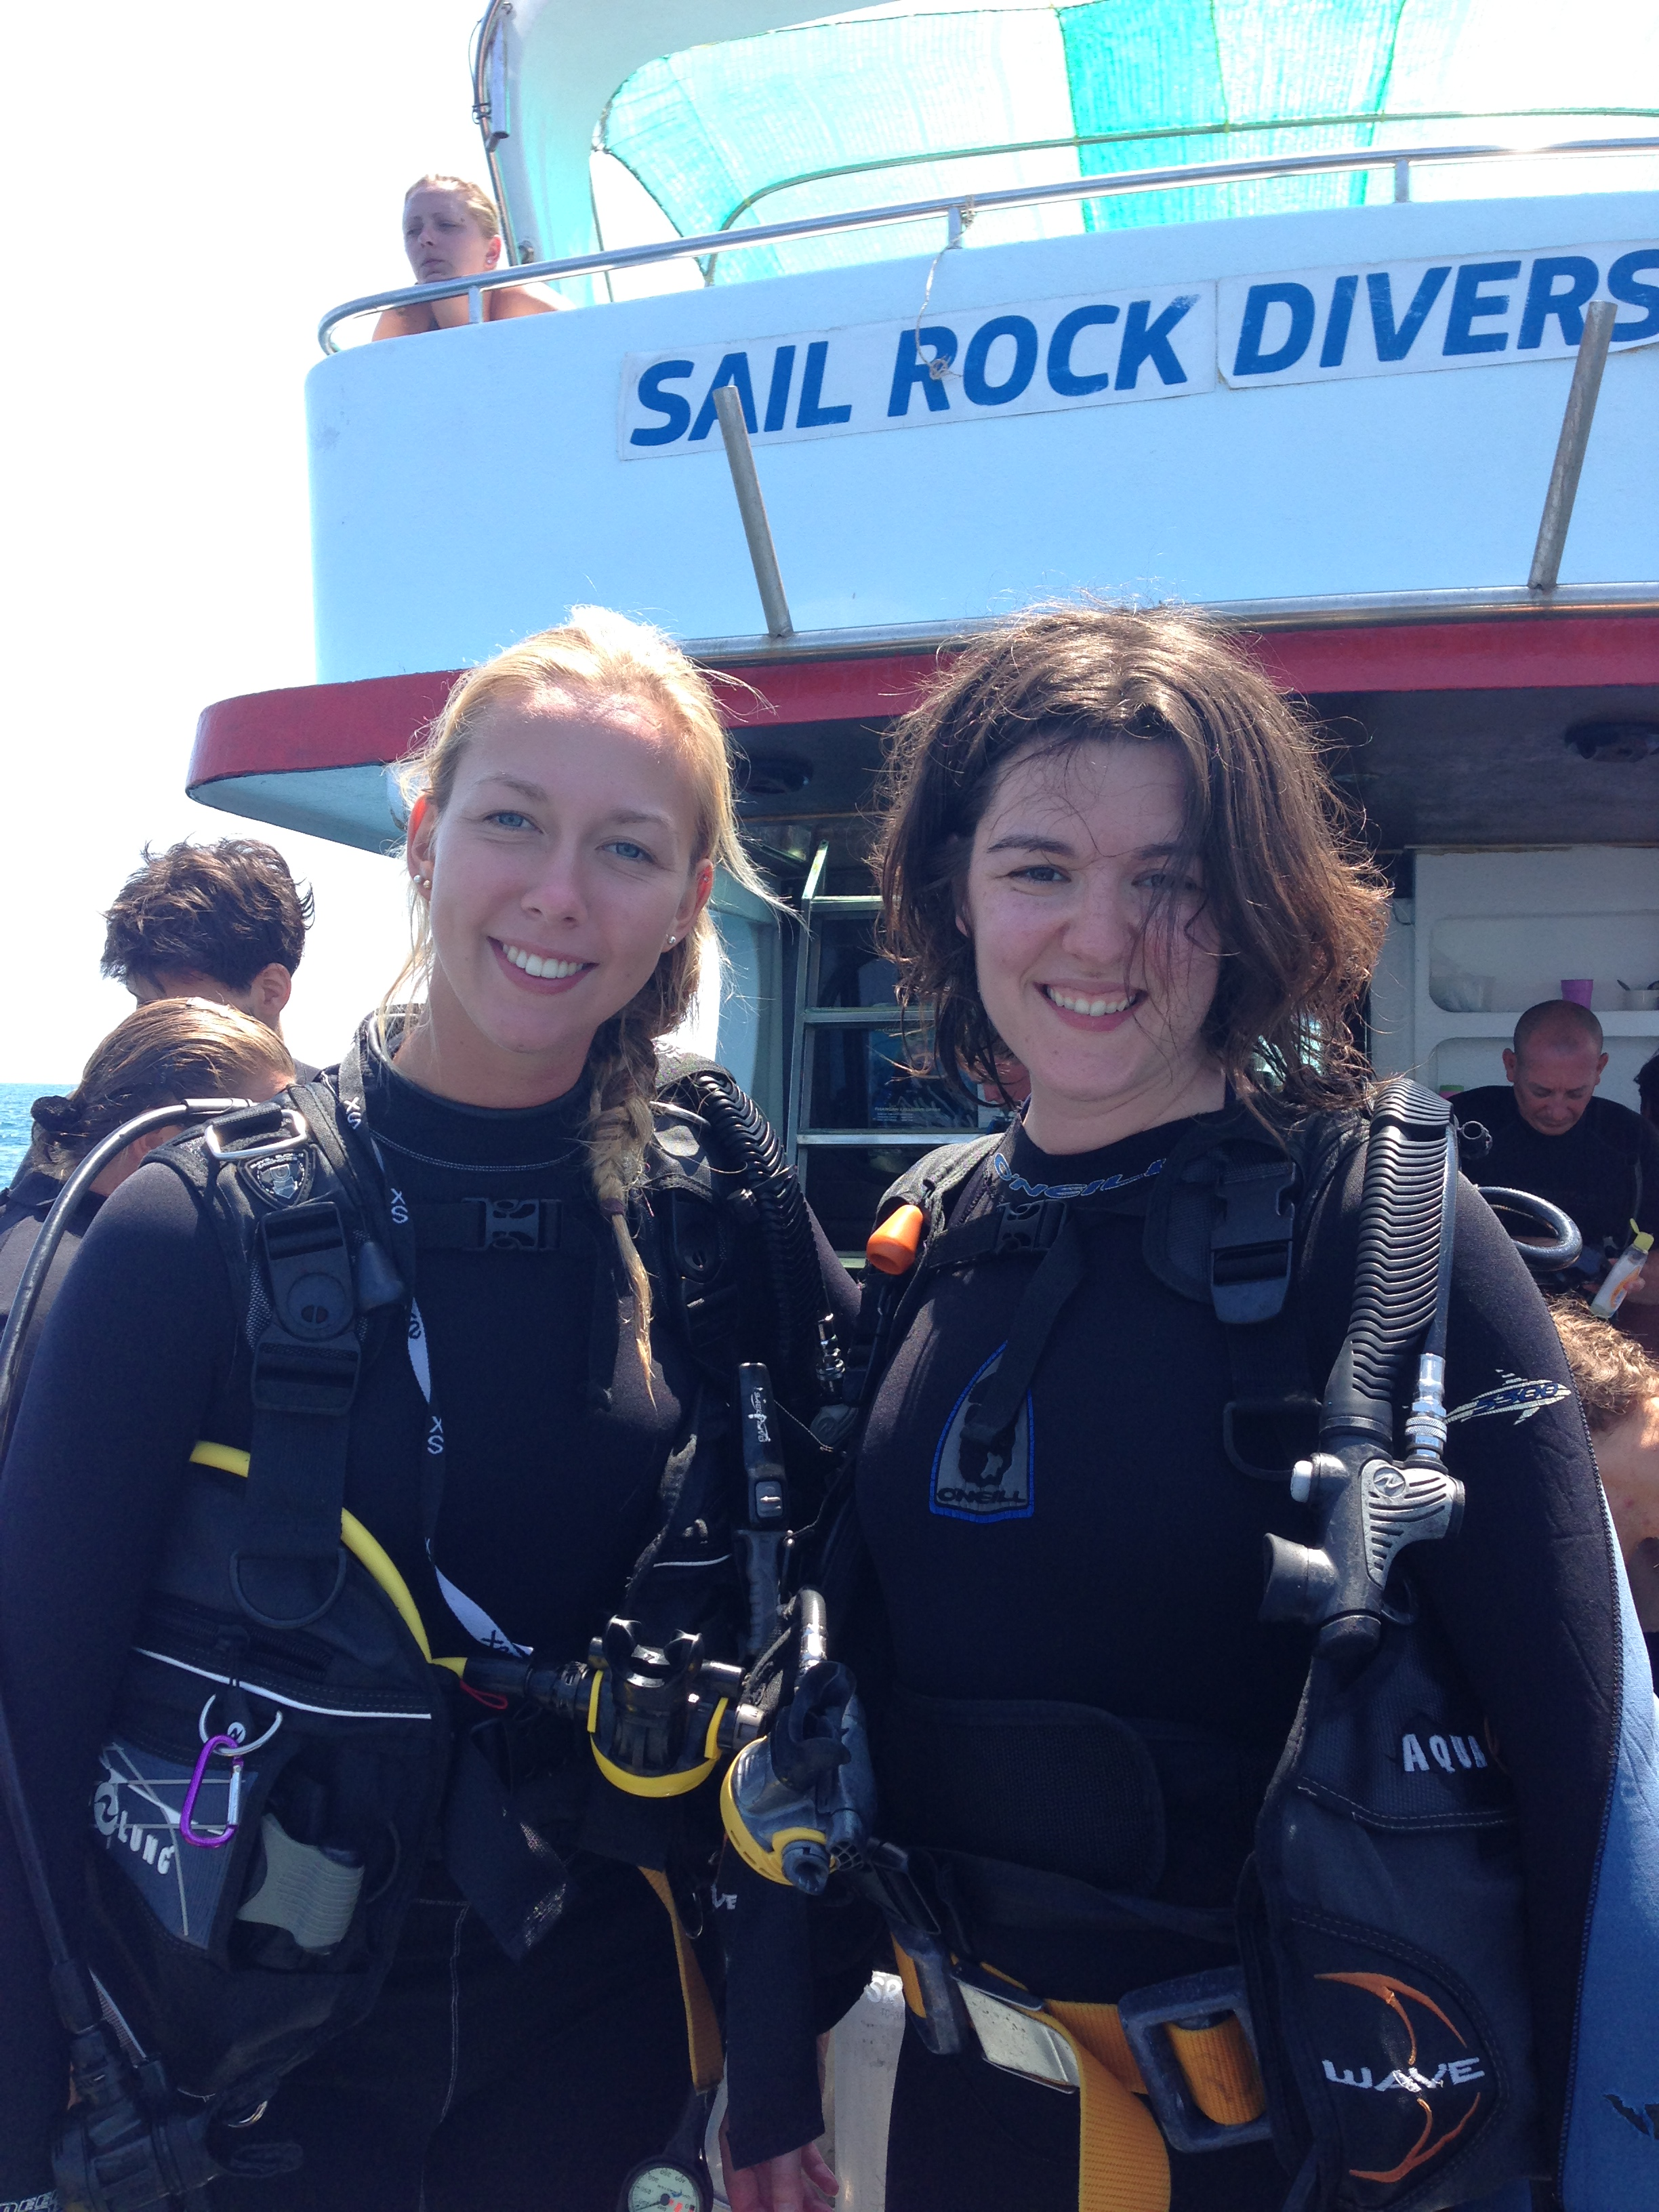 With my Sail Rock Divers instructor Emma looking like badass superheroes with messy hair.